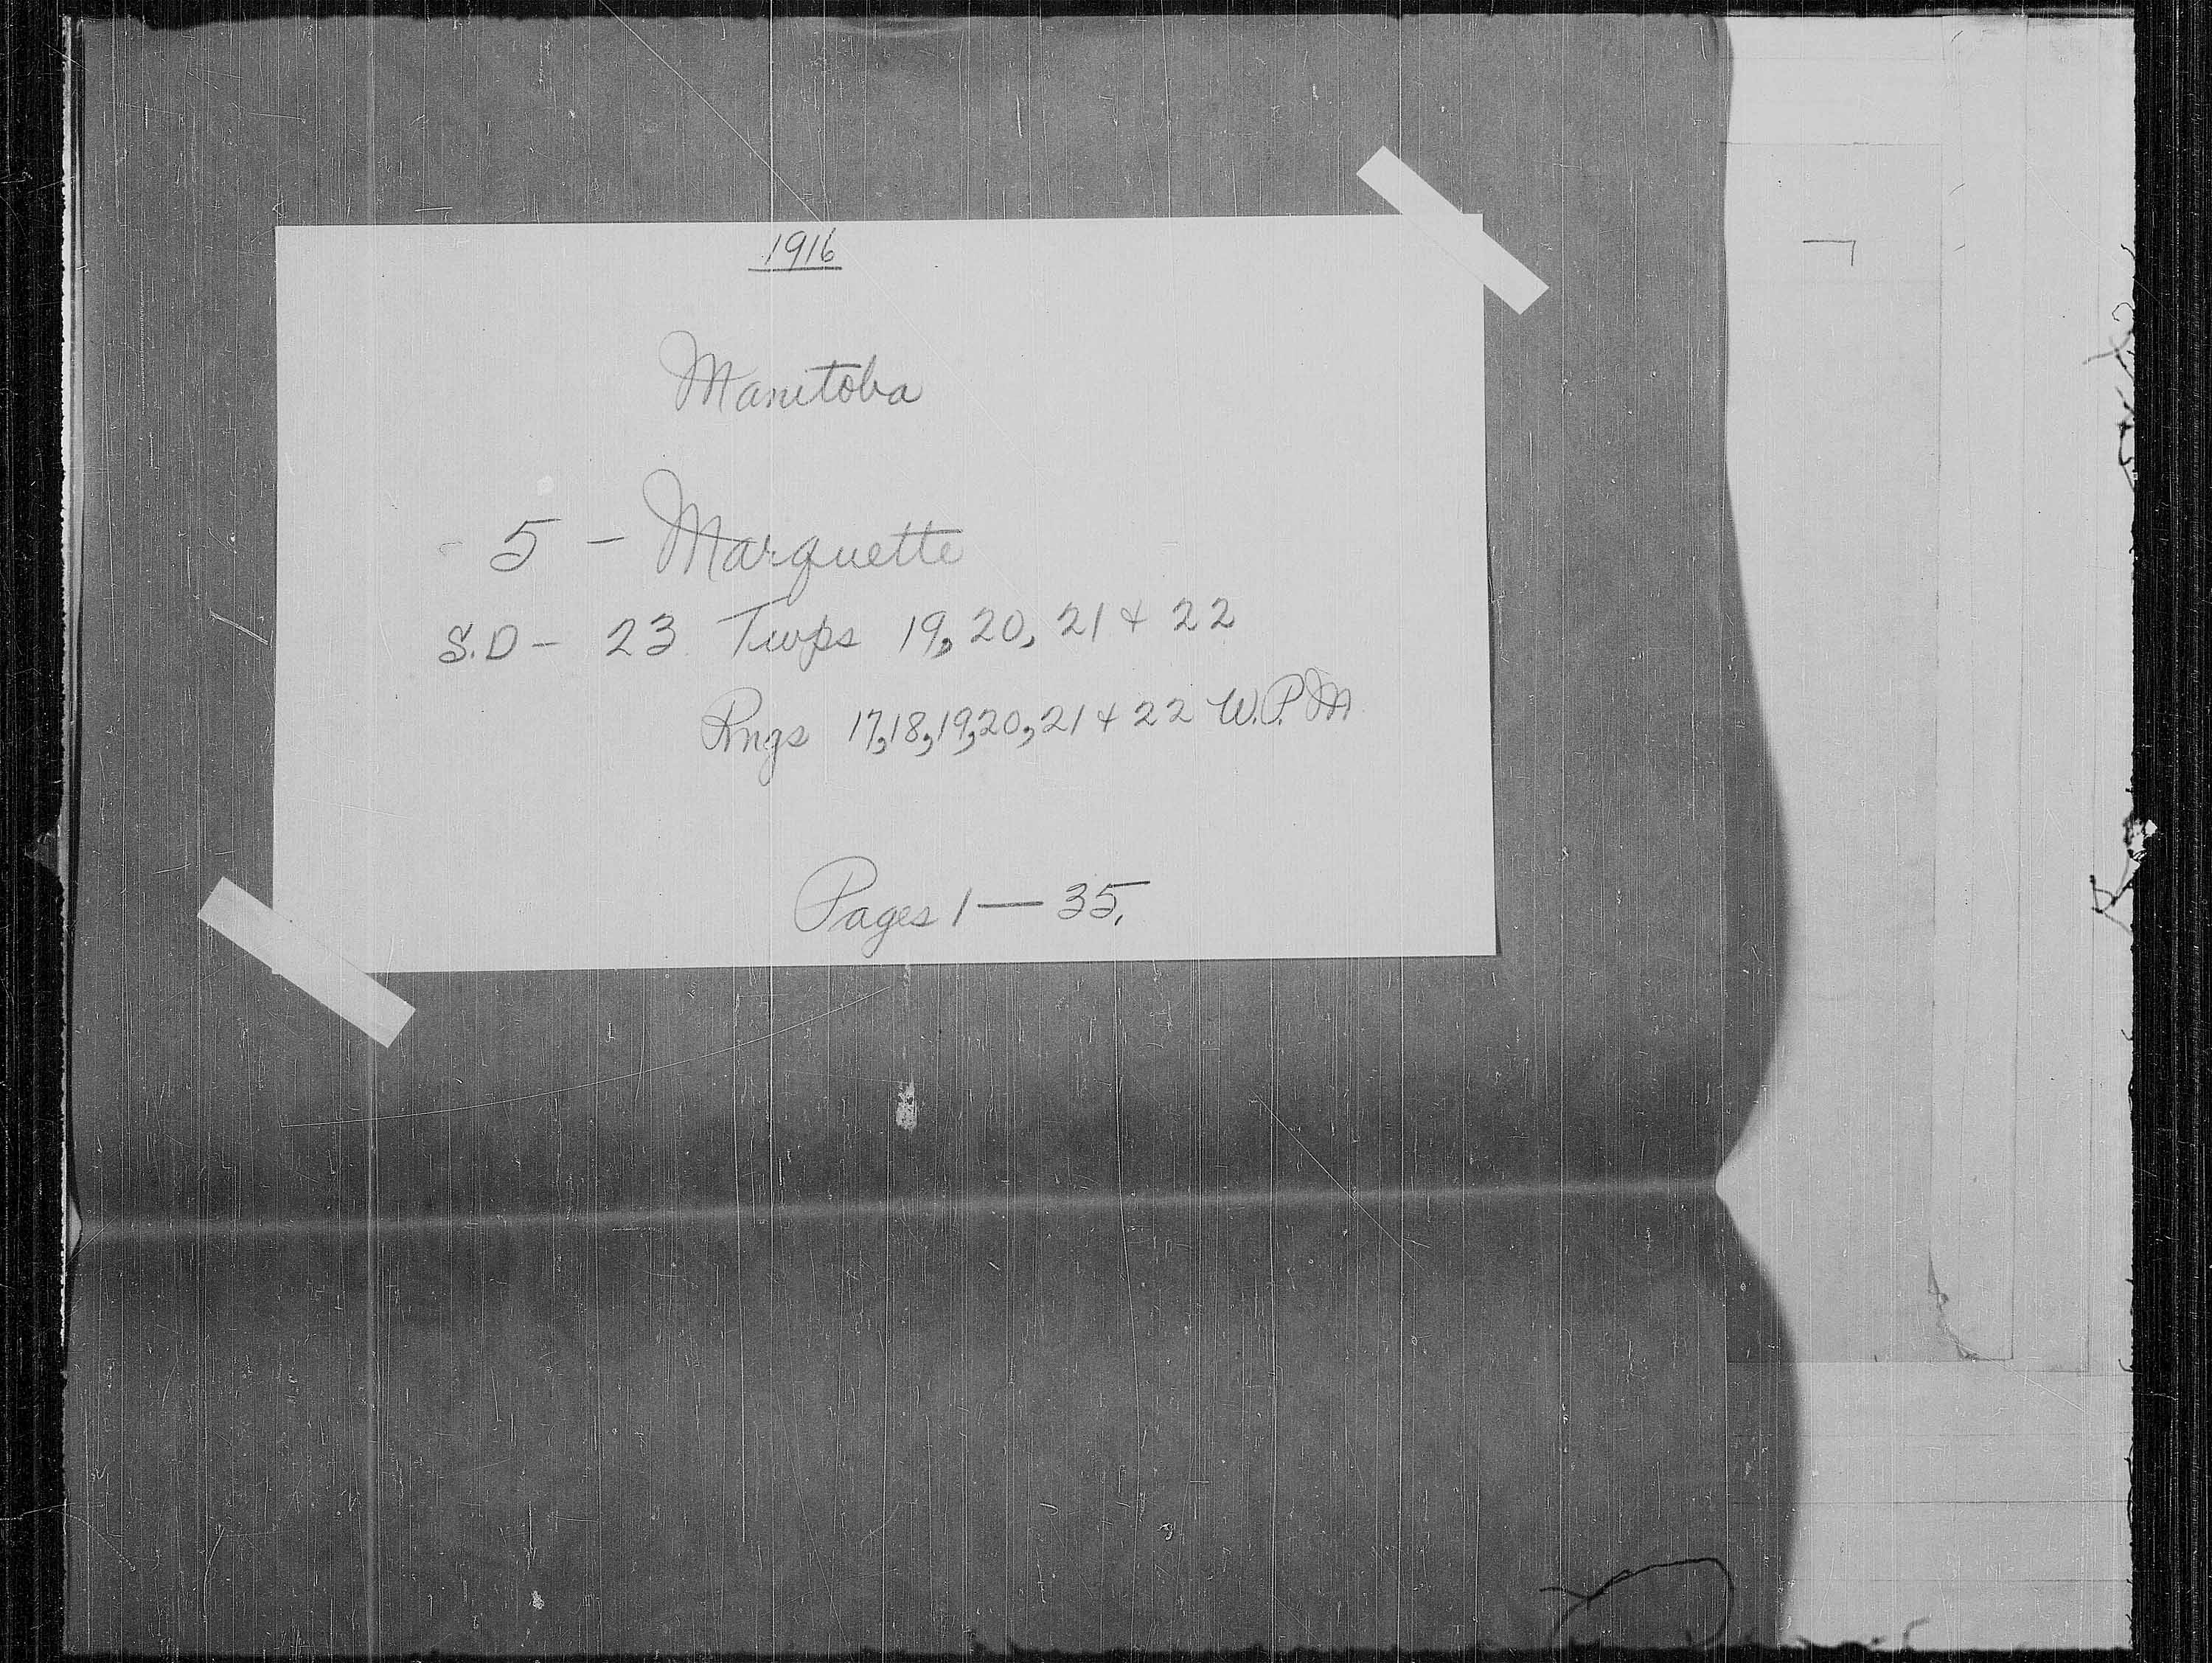 Title: Census of the Prairie Provinces, 1916 - Mikan Number: 3800575 - Microform: t-21928